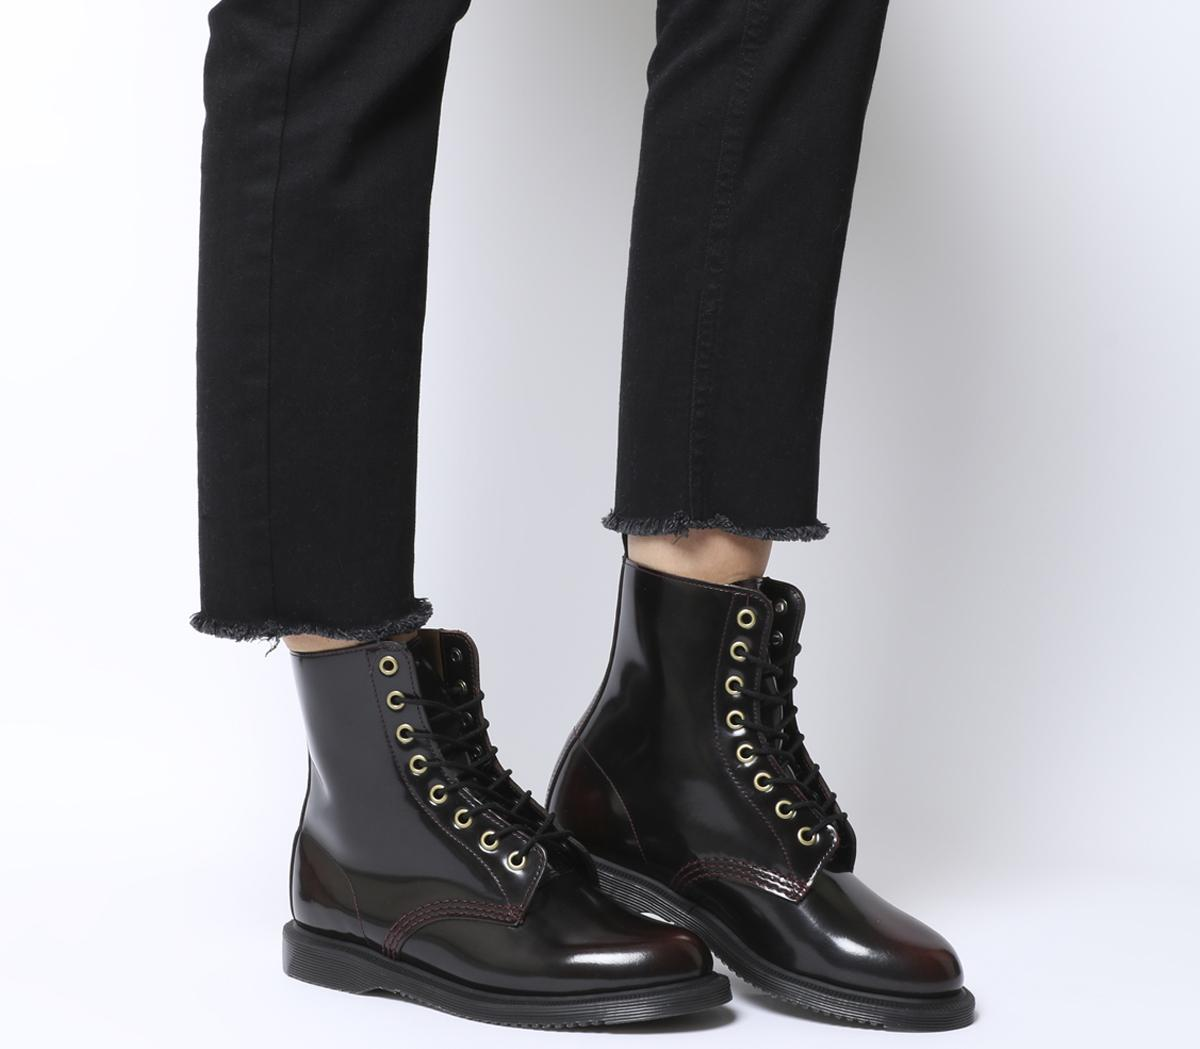 Doc Dr. Martens Air Wair Size 538, Knee High, Laced Limited Edition Vintage Boots, fab!